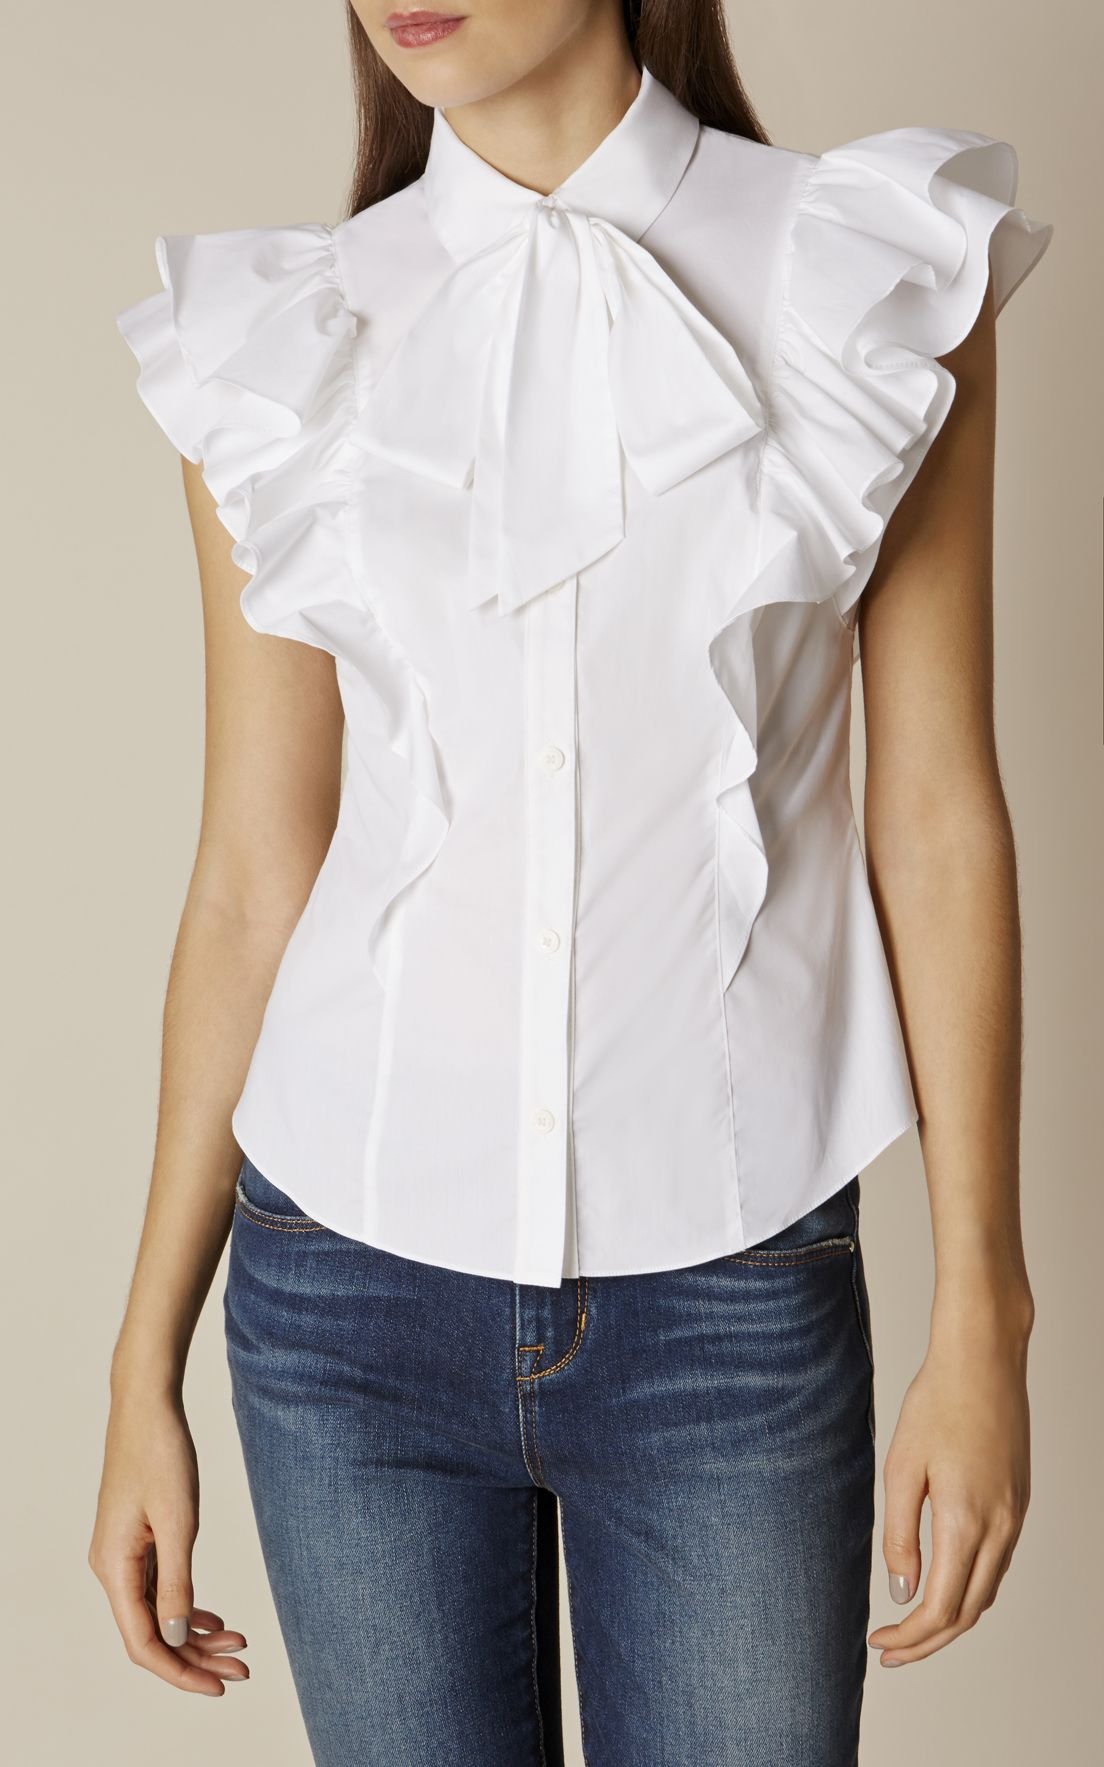 f60025d1 Karen Millen, THE SUPER FRILL SHIRT White | presents for me??? ;) in ...